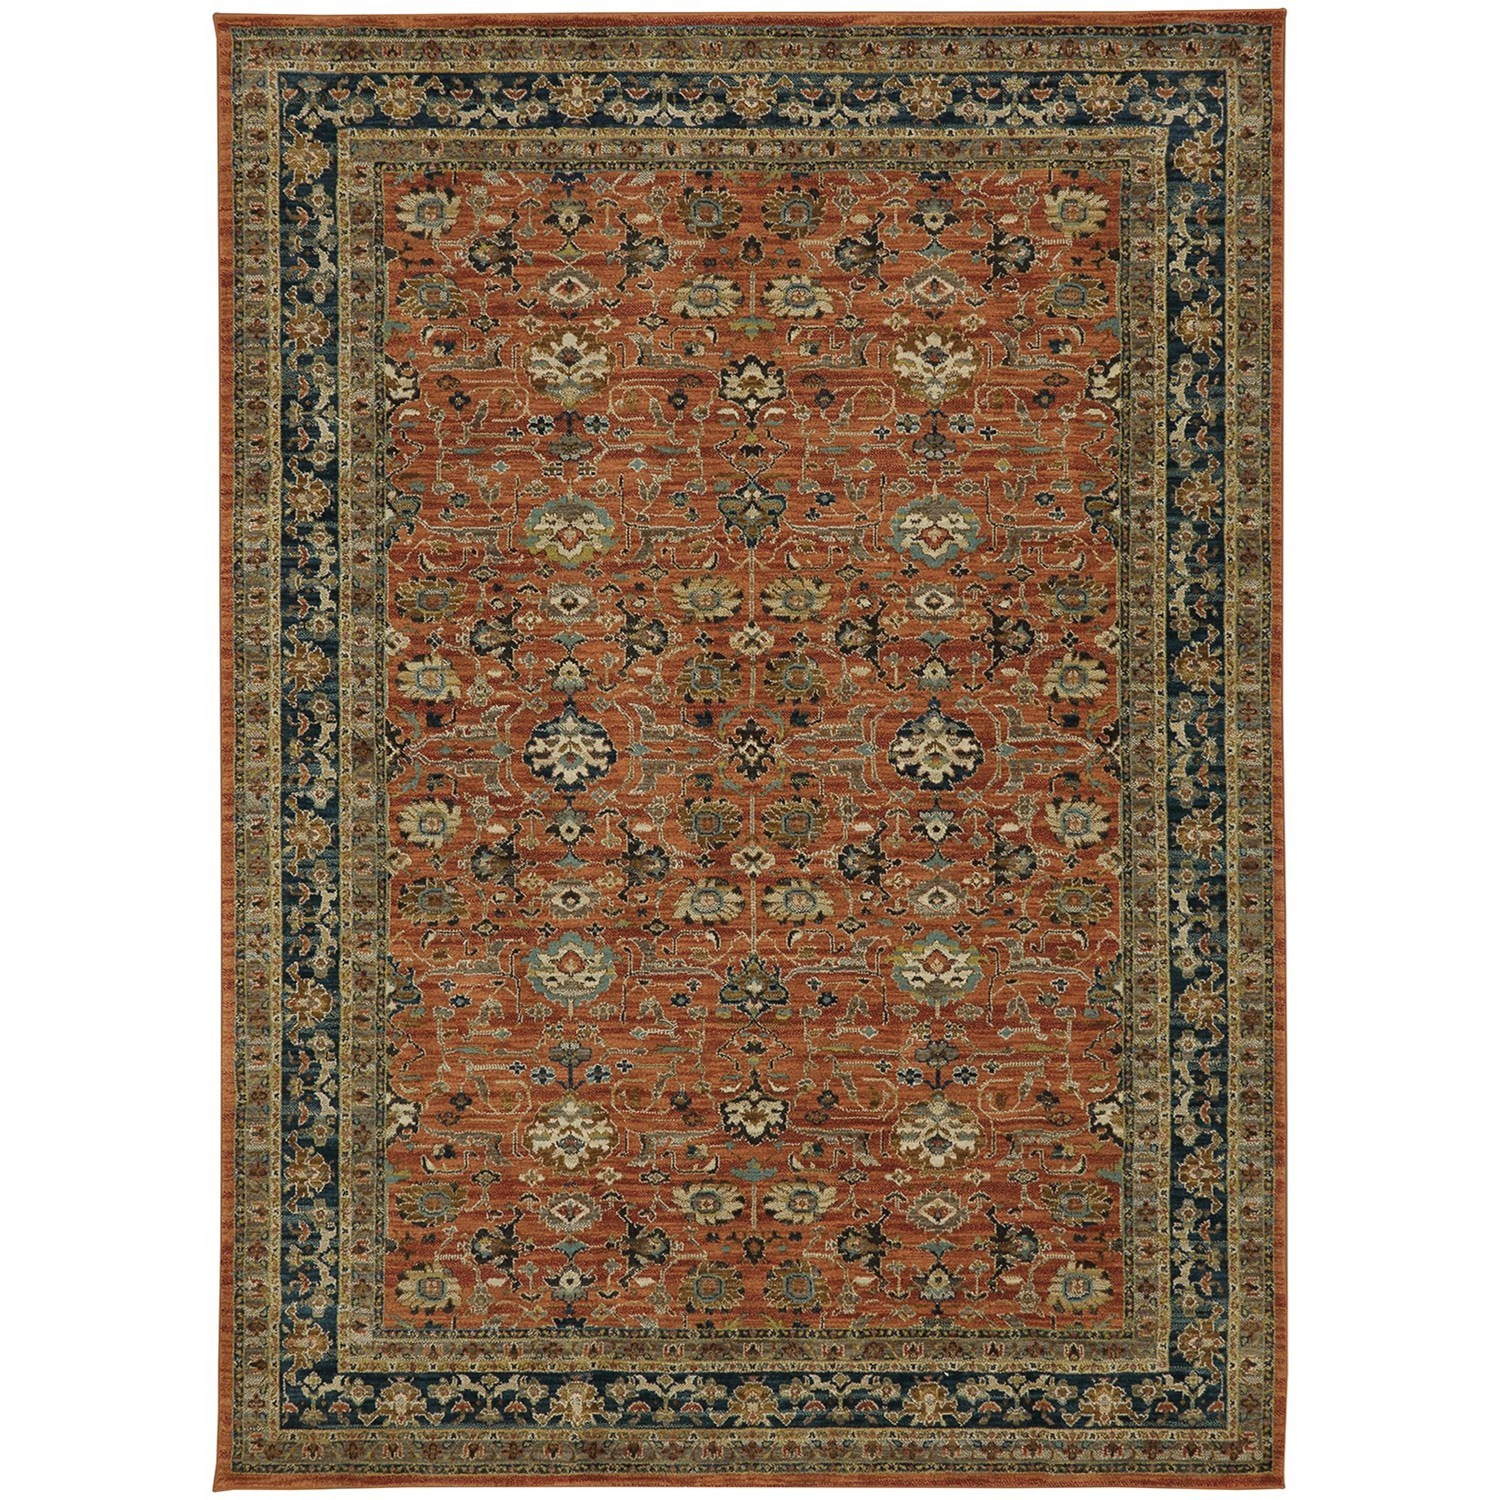 "Spice Market 5' 3""x7' 10"" Rectangle Ornamental Area Rug by Karastan Rugs at Darvin Furniture"